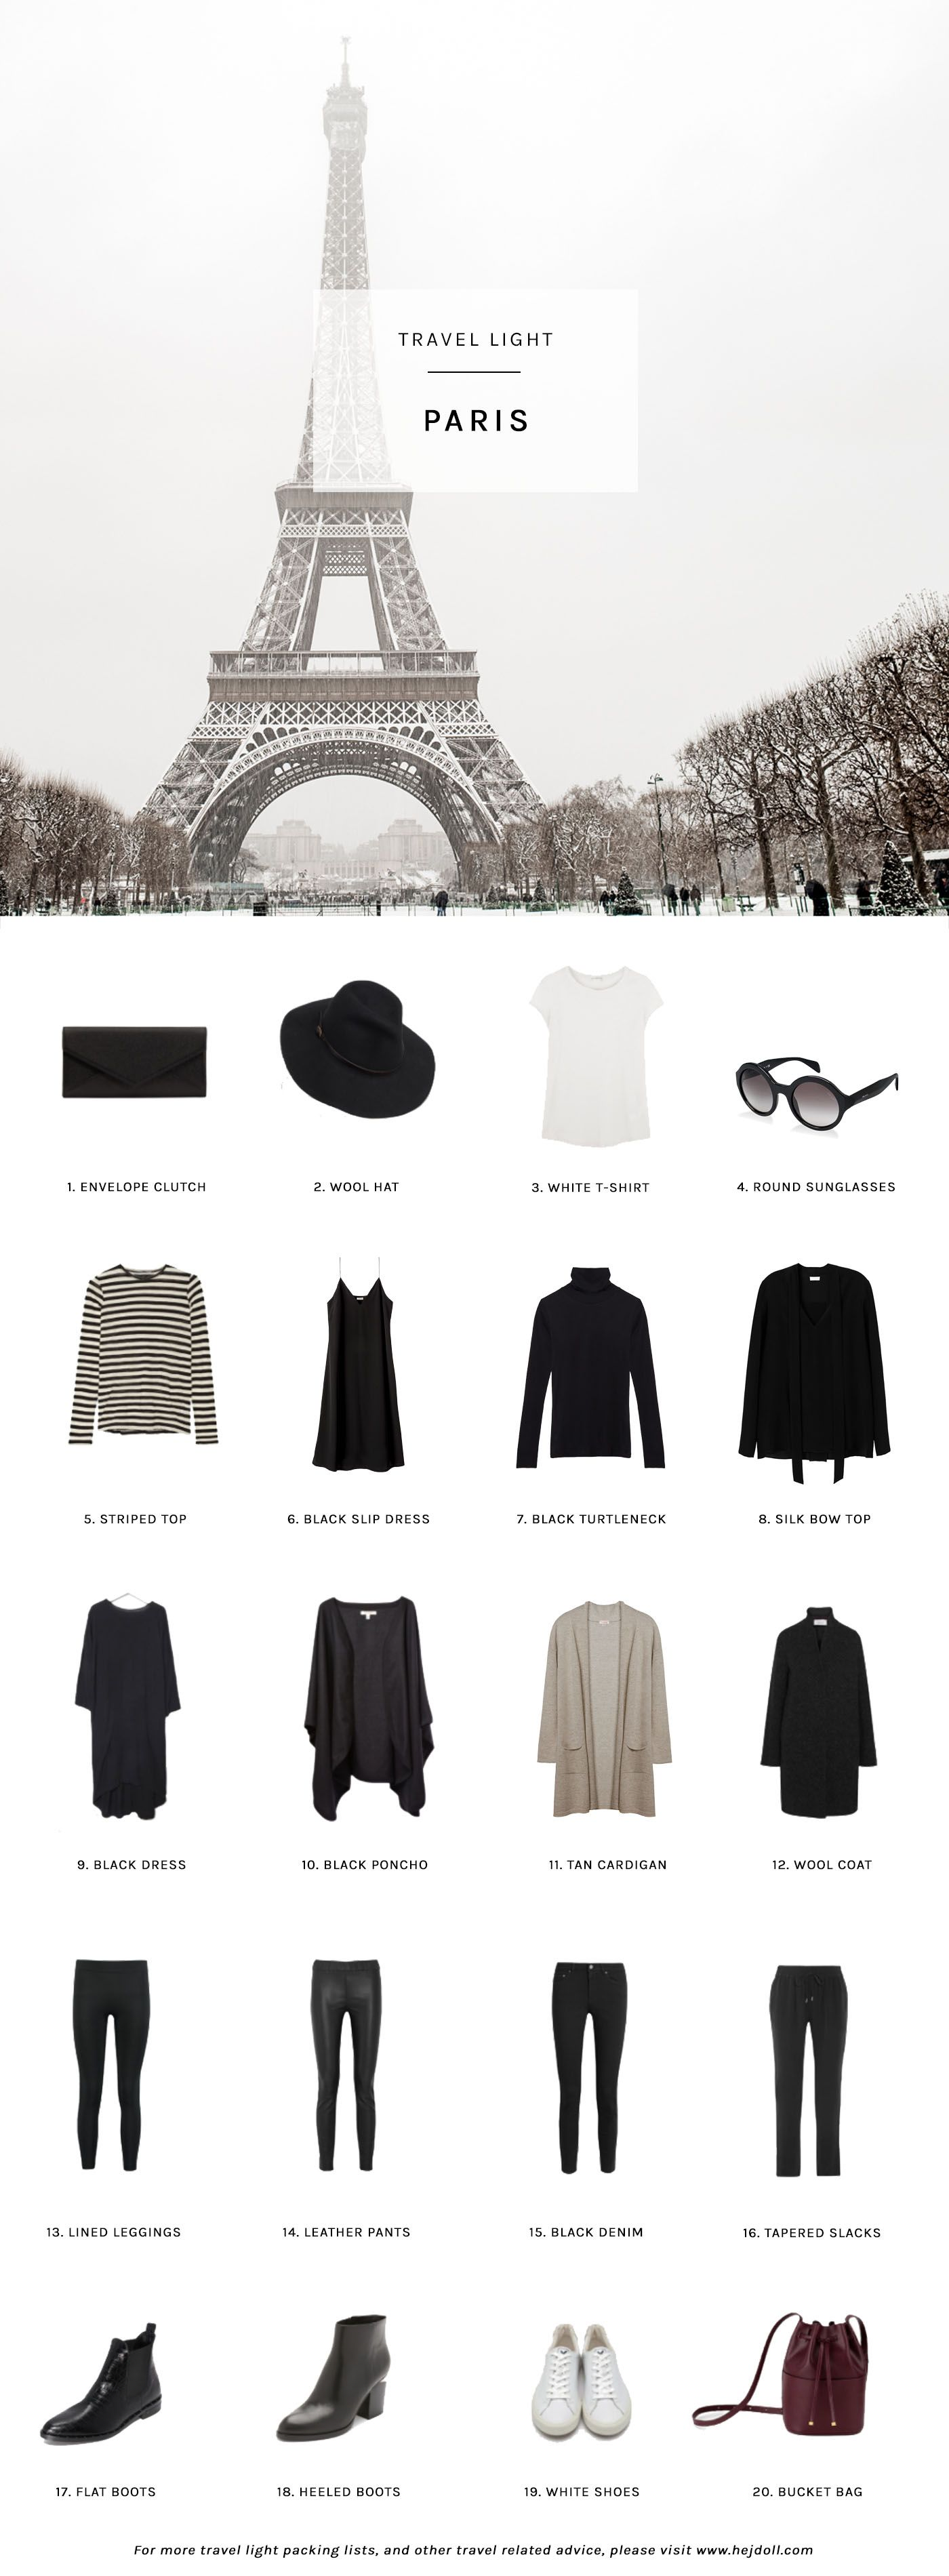 Travel Light Pack For Winter In Paris 20 Items 10 Outfits 1 Carry On